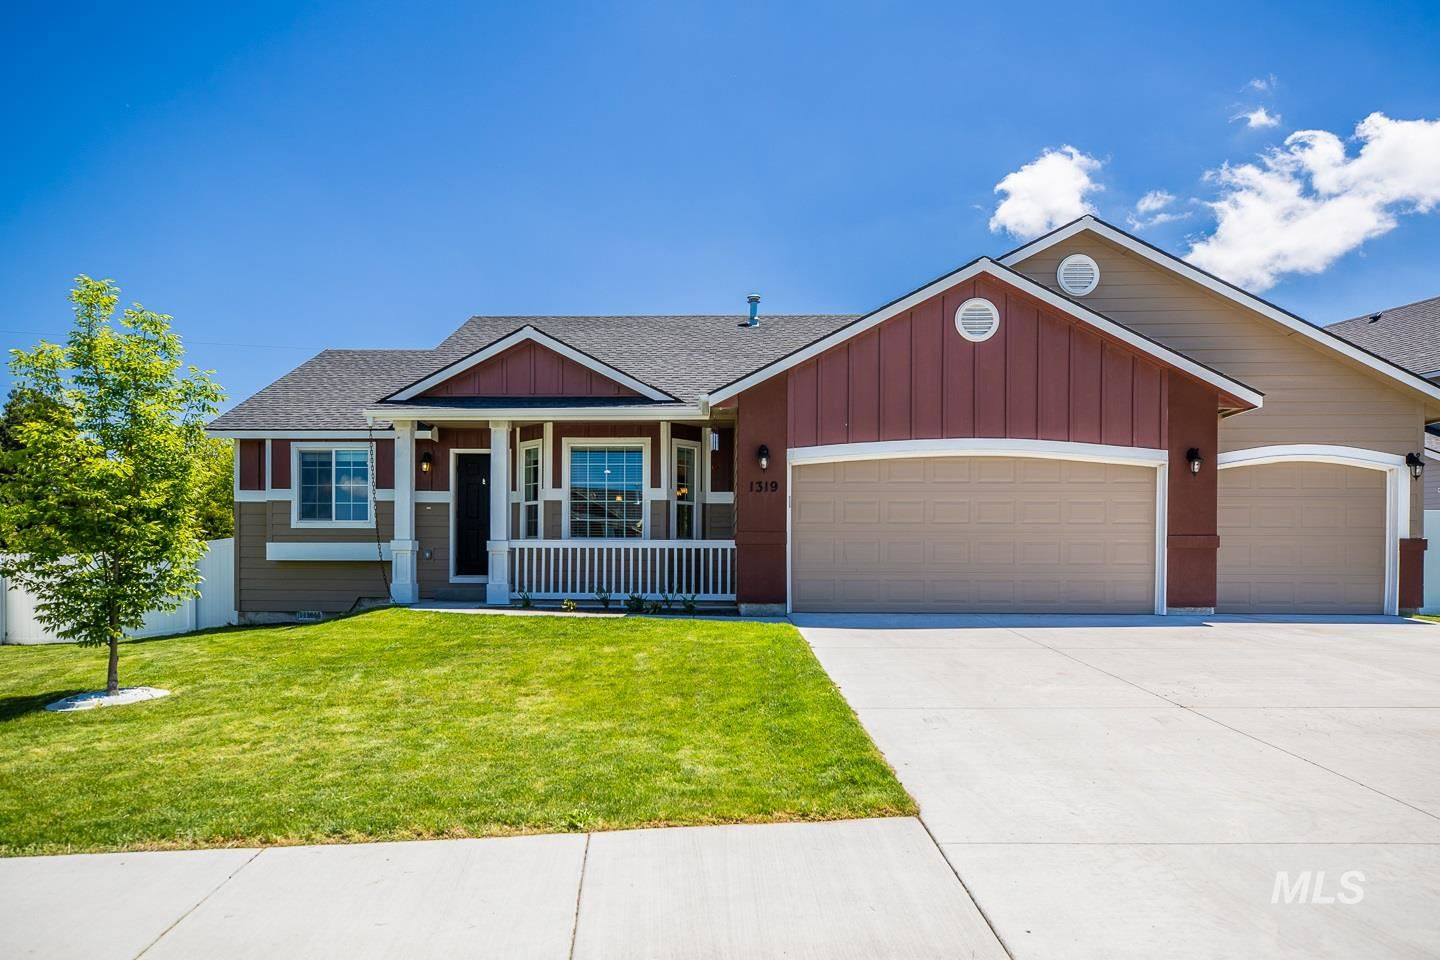 Photo of 1319 14th Ave E, Jerome, ID 83338 (MLS # 98768454)